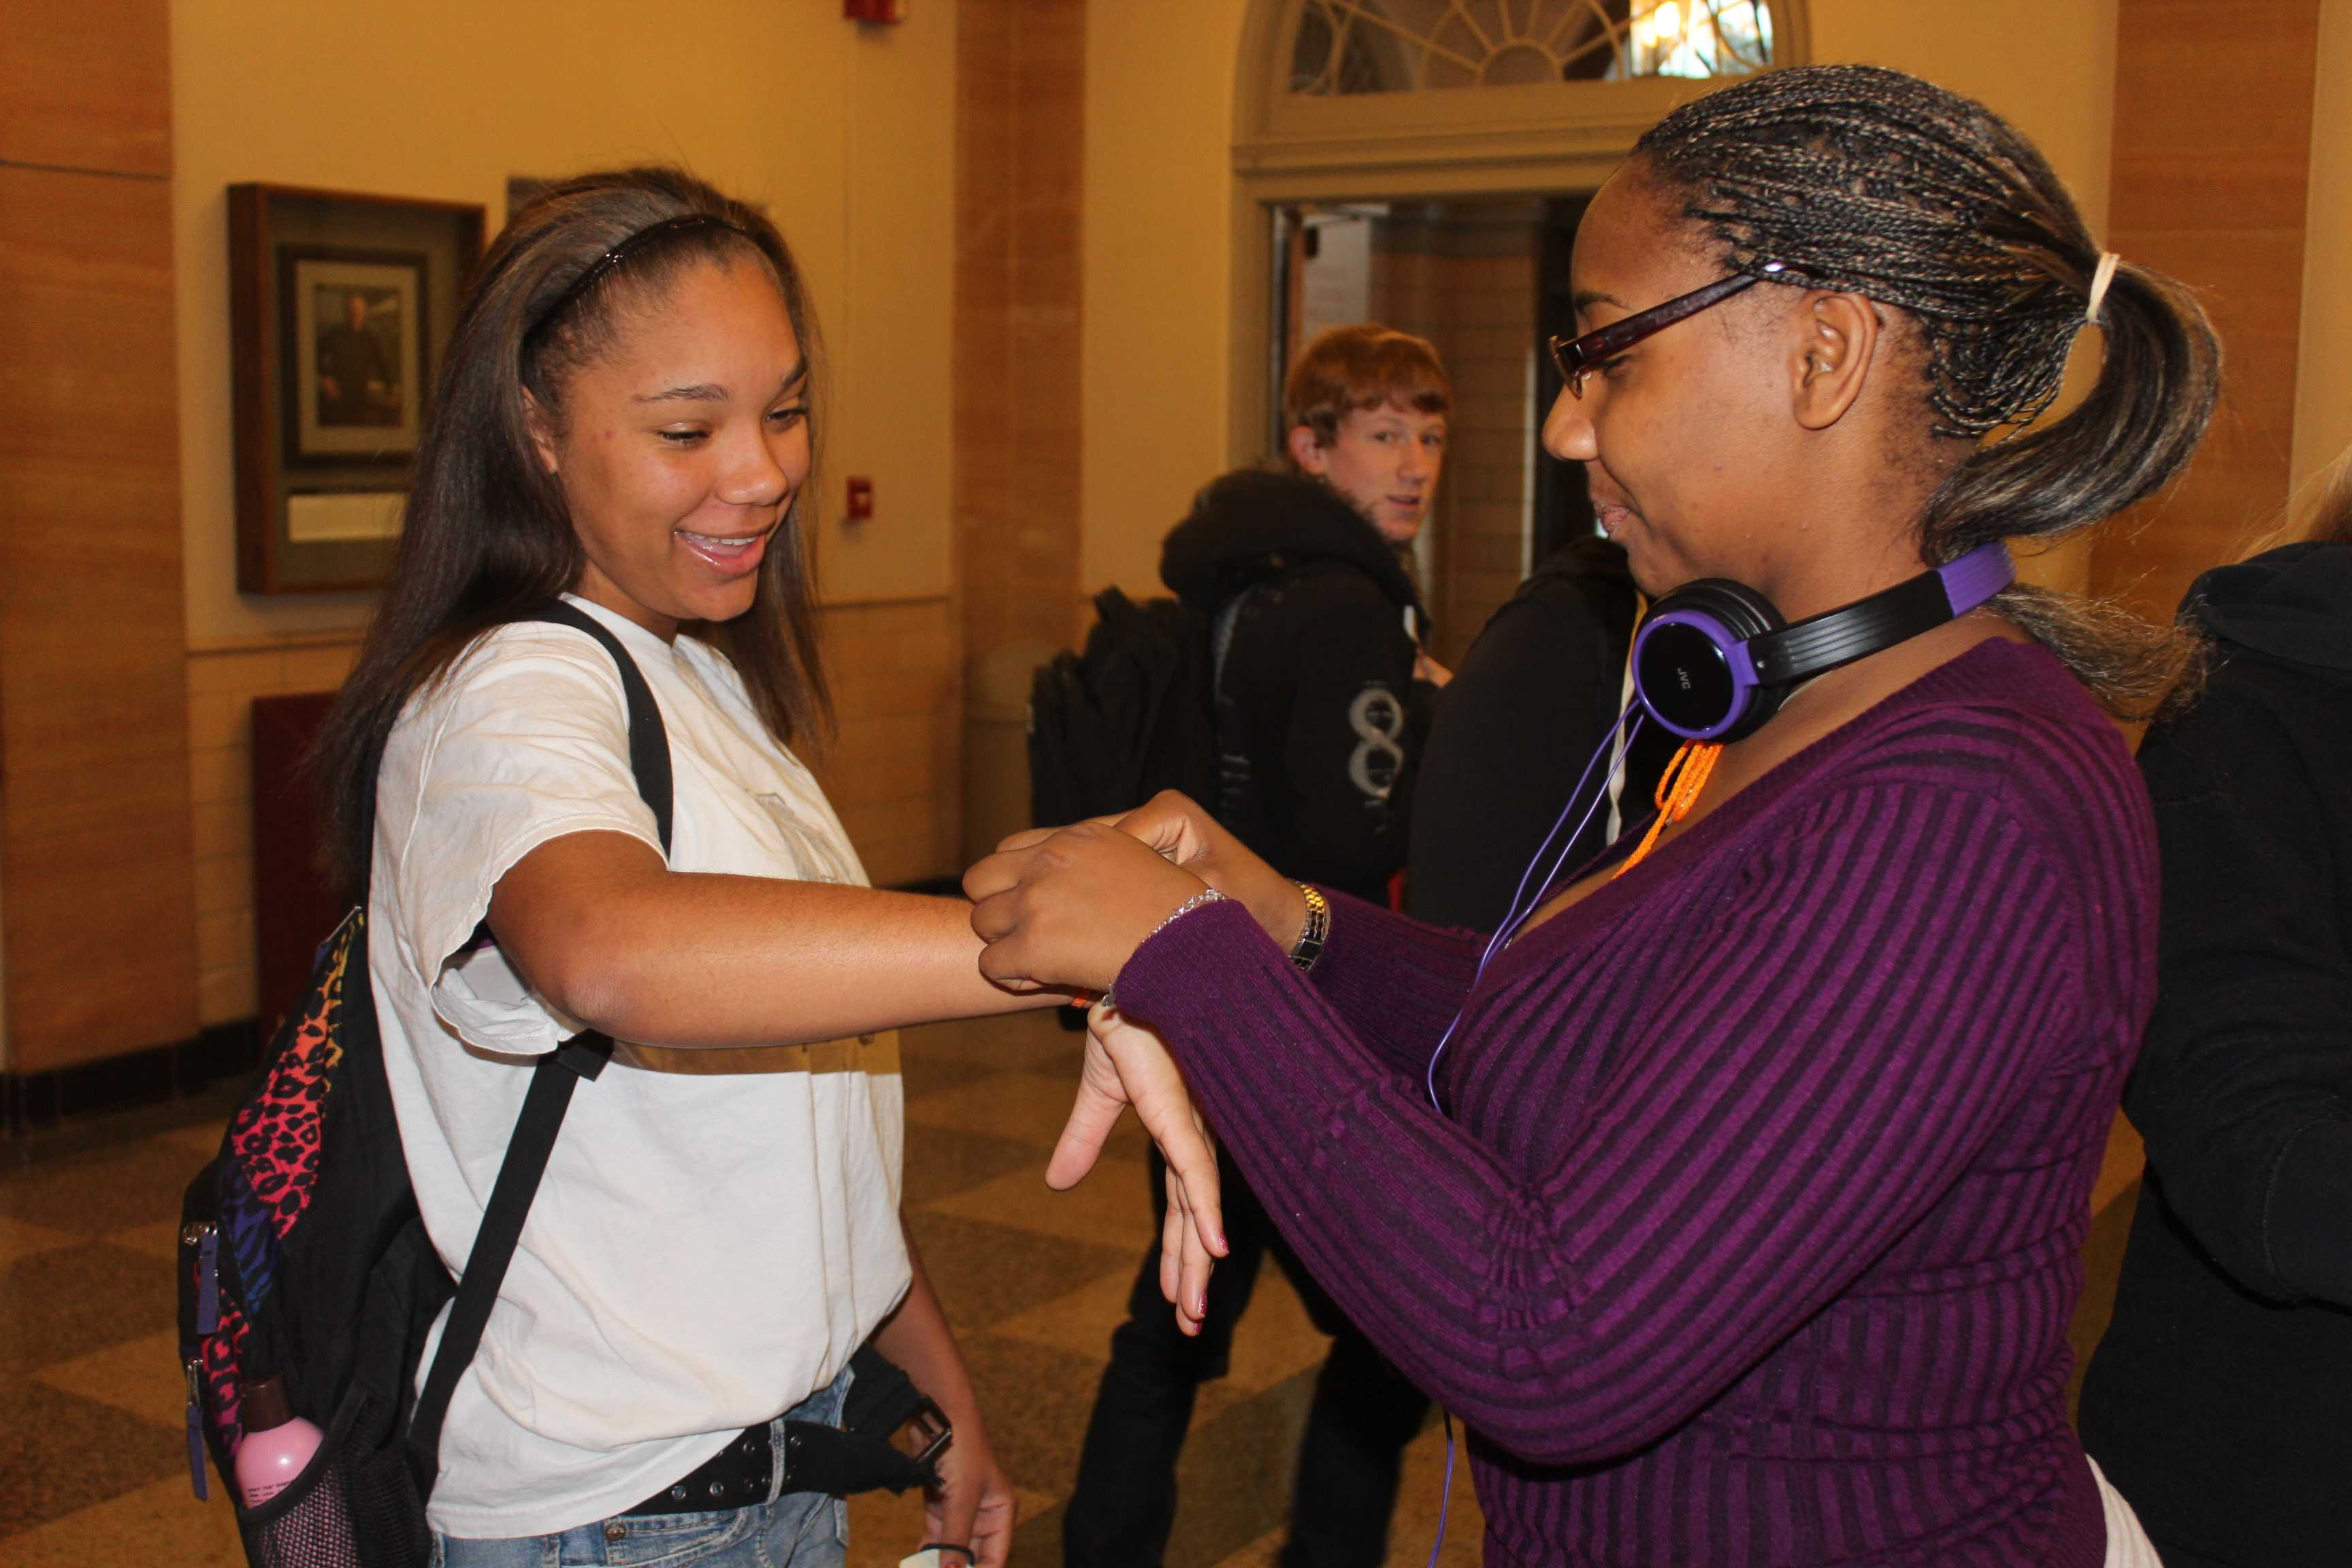 Students tie orange bracelets around their wrists in support of bullying prevention.  Photo by Jeff Morris